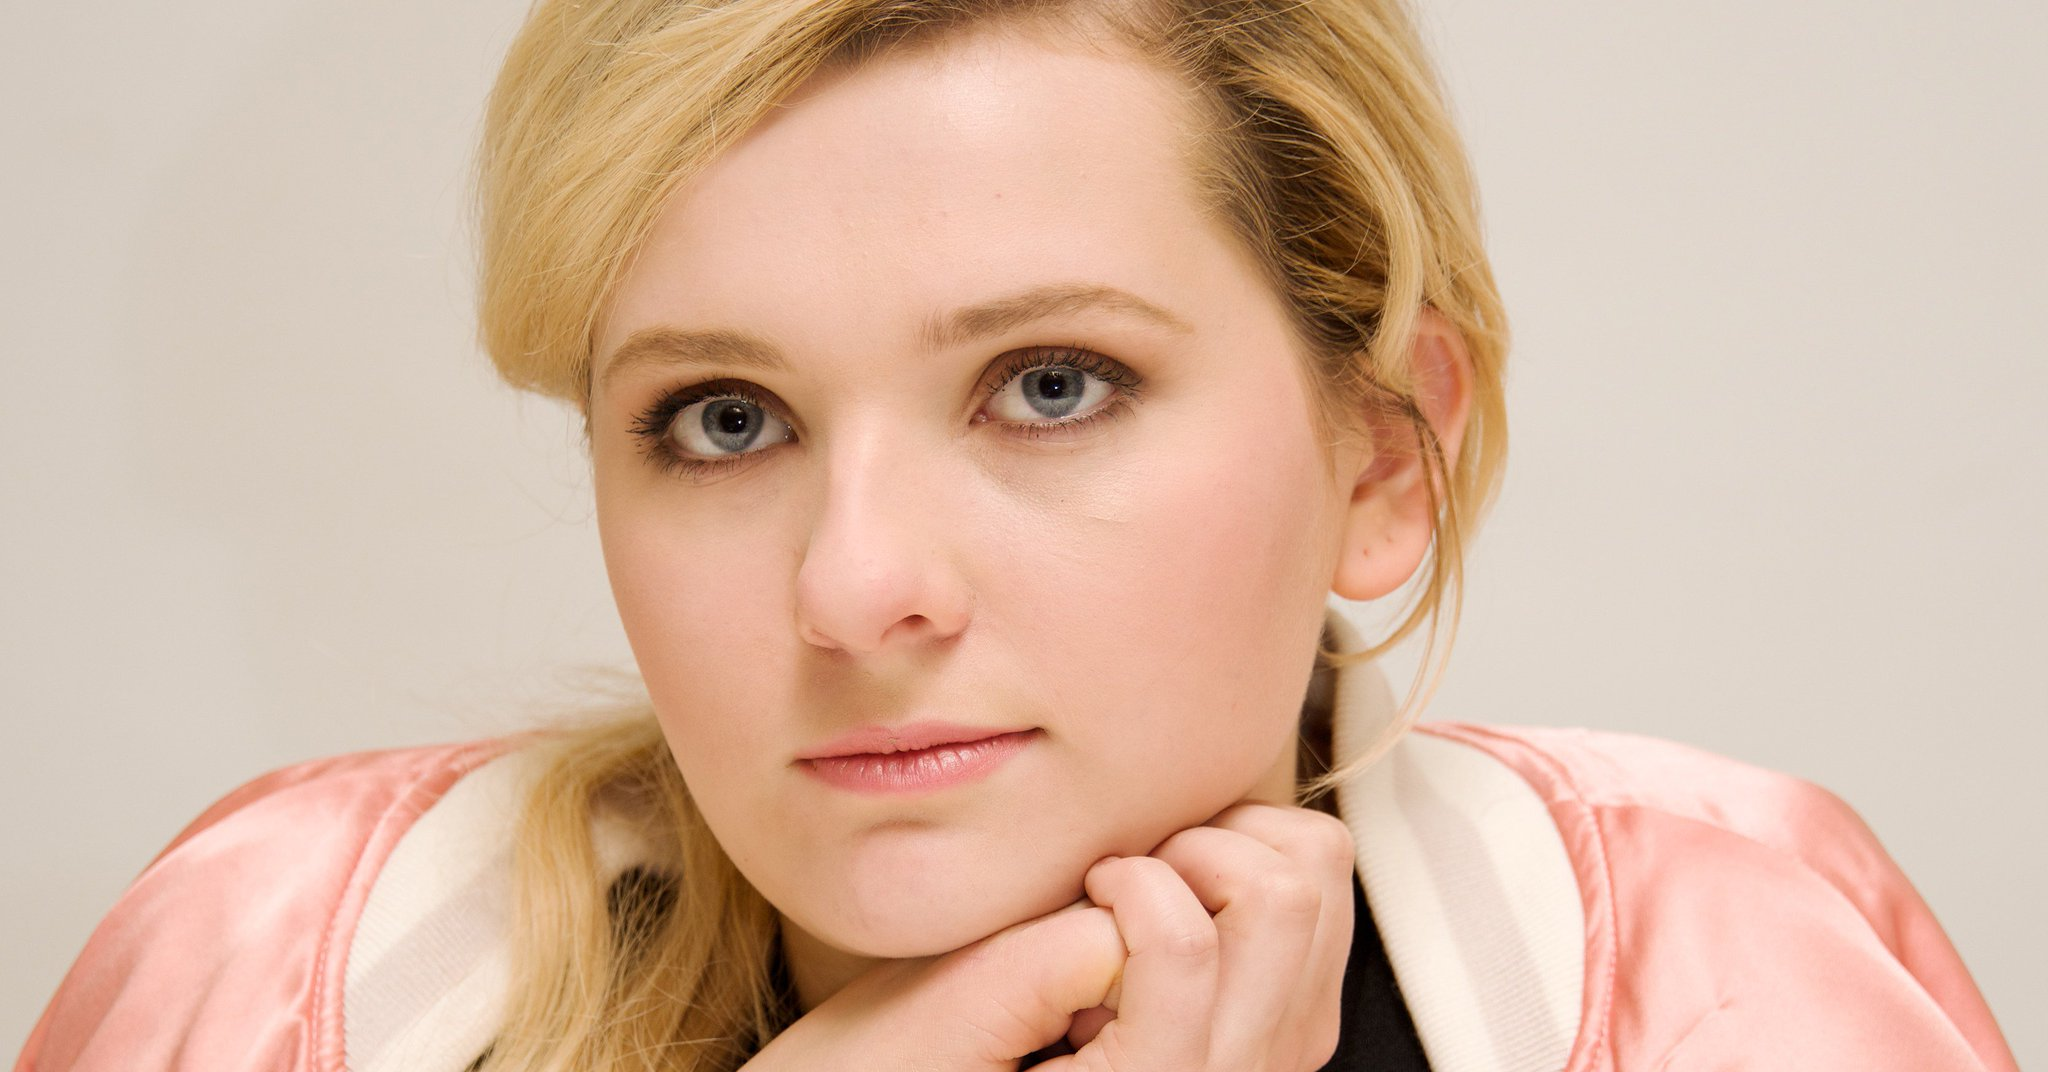 Abigail Breslin opens up about experiencing PTSD after sexual assault and domestic violence: https://t.co/niLrOmB165 https://t.co/A5QGlB6T37